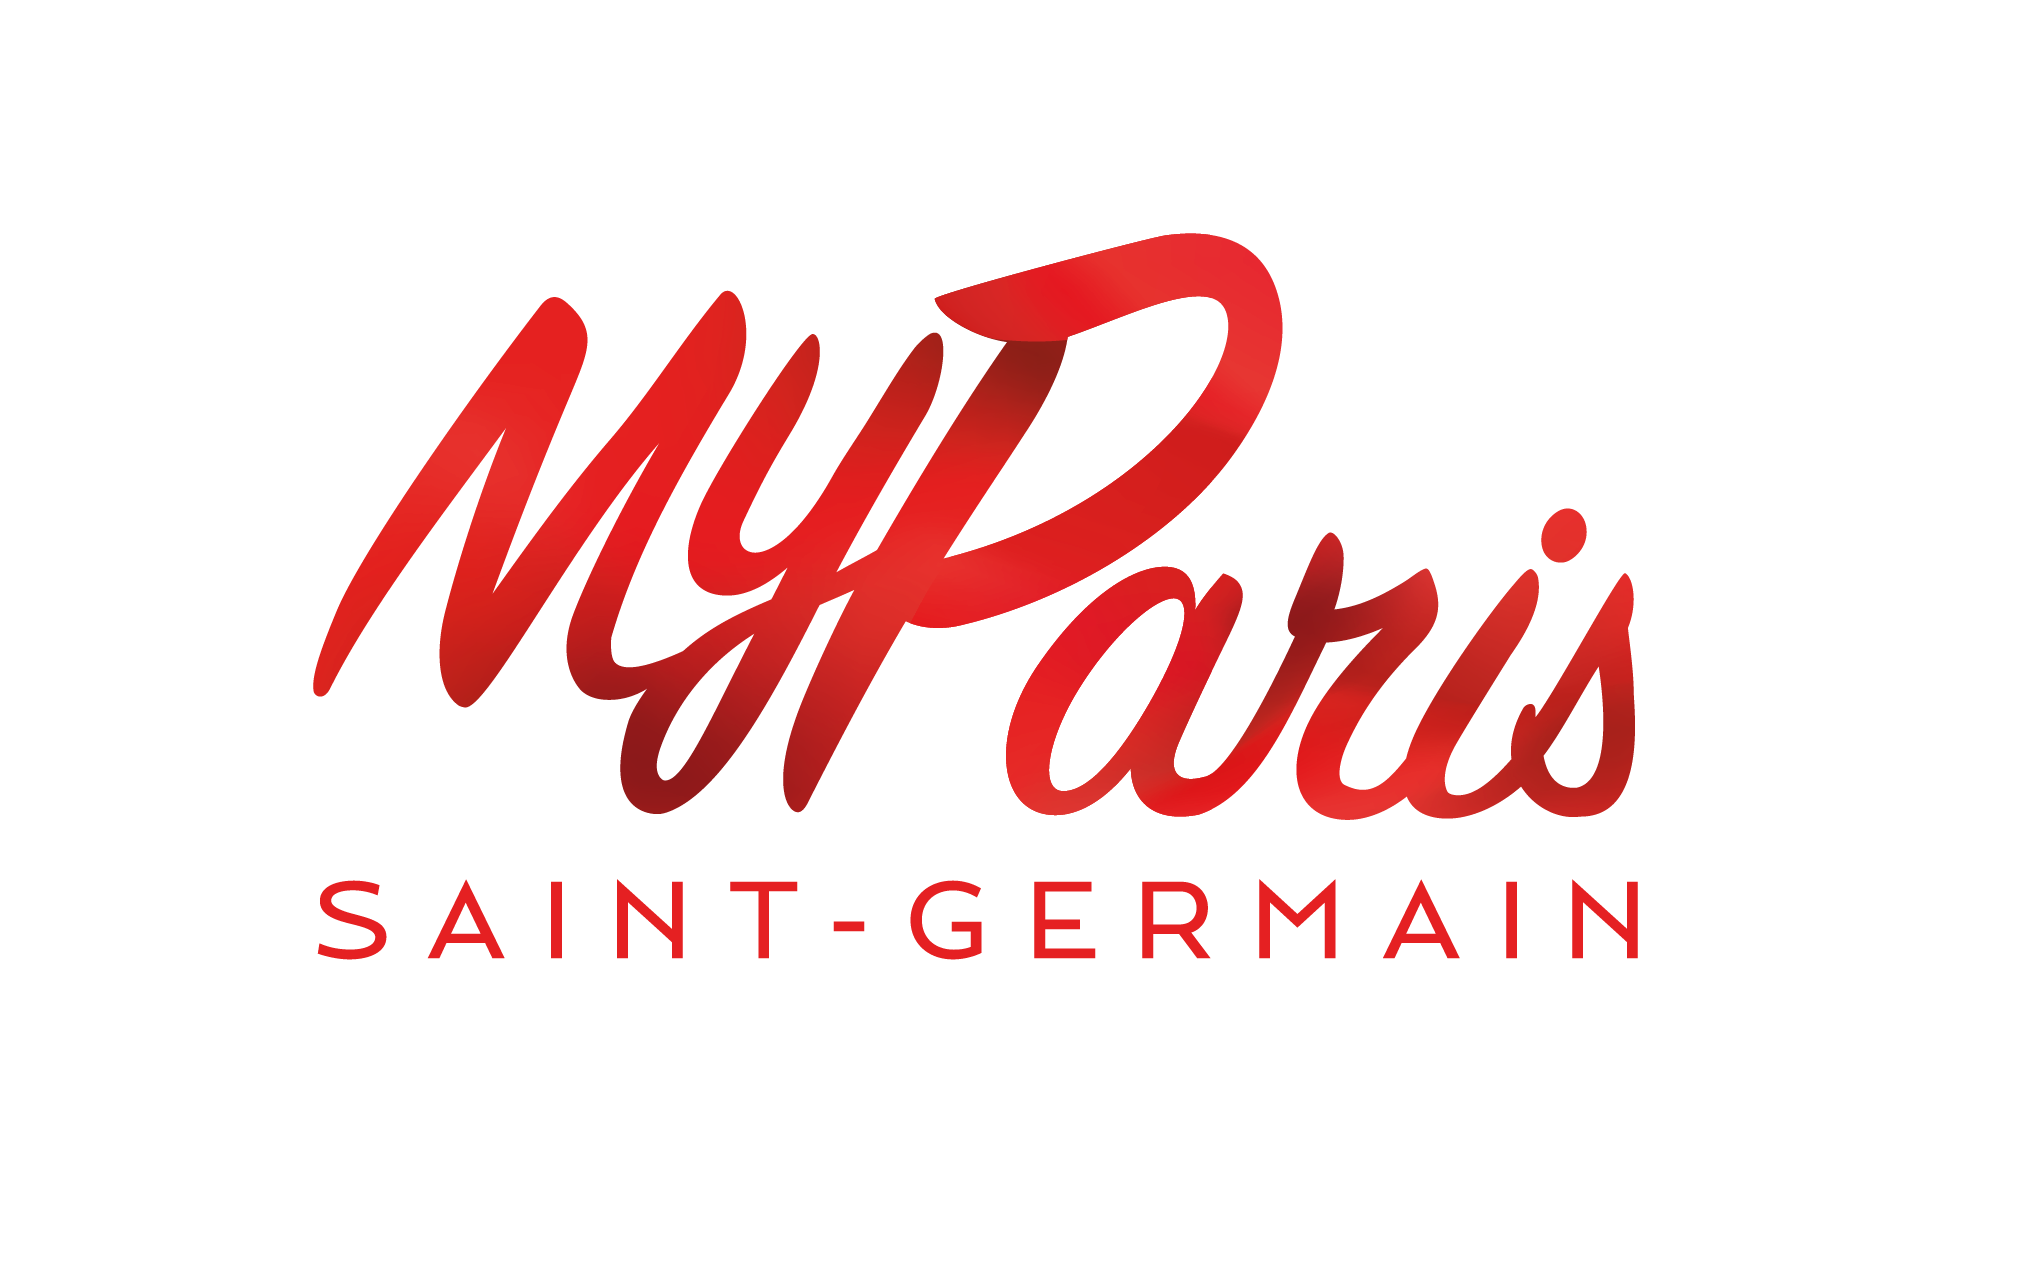 myparis saint-germain PSG membership